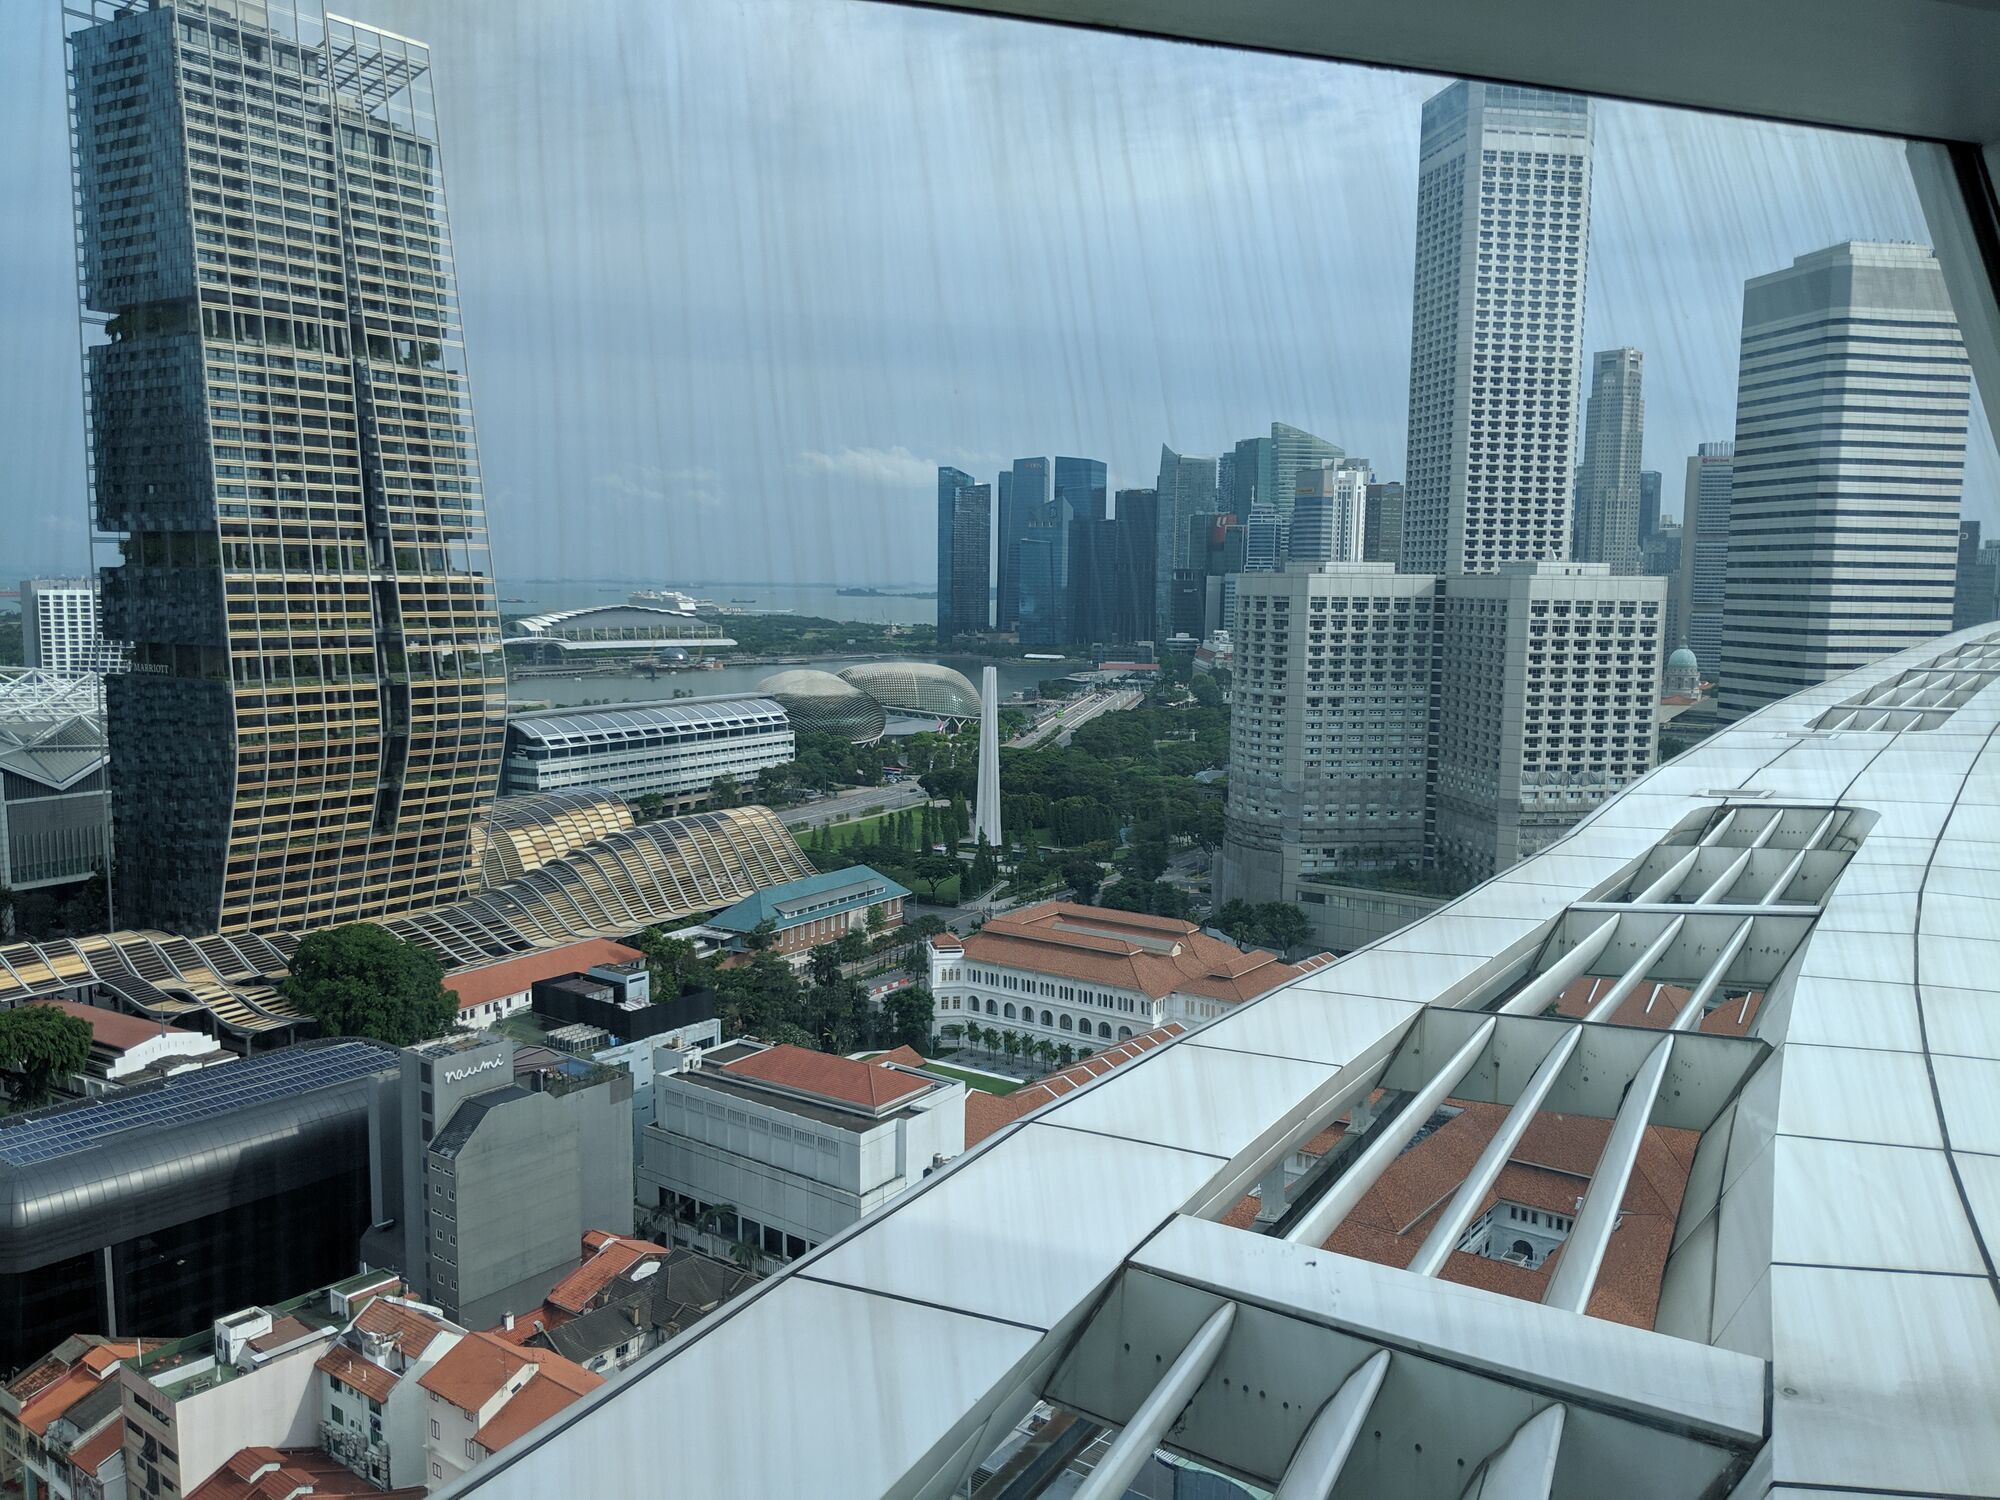 The top floor has a meeting room provides a 360 degree of the Marina bay area